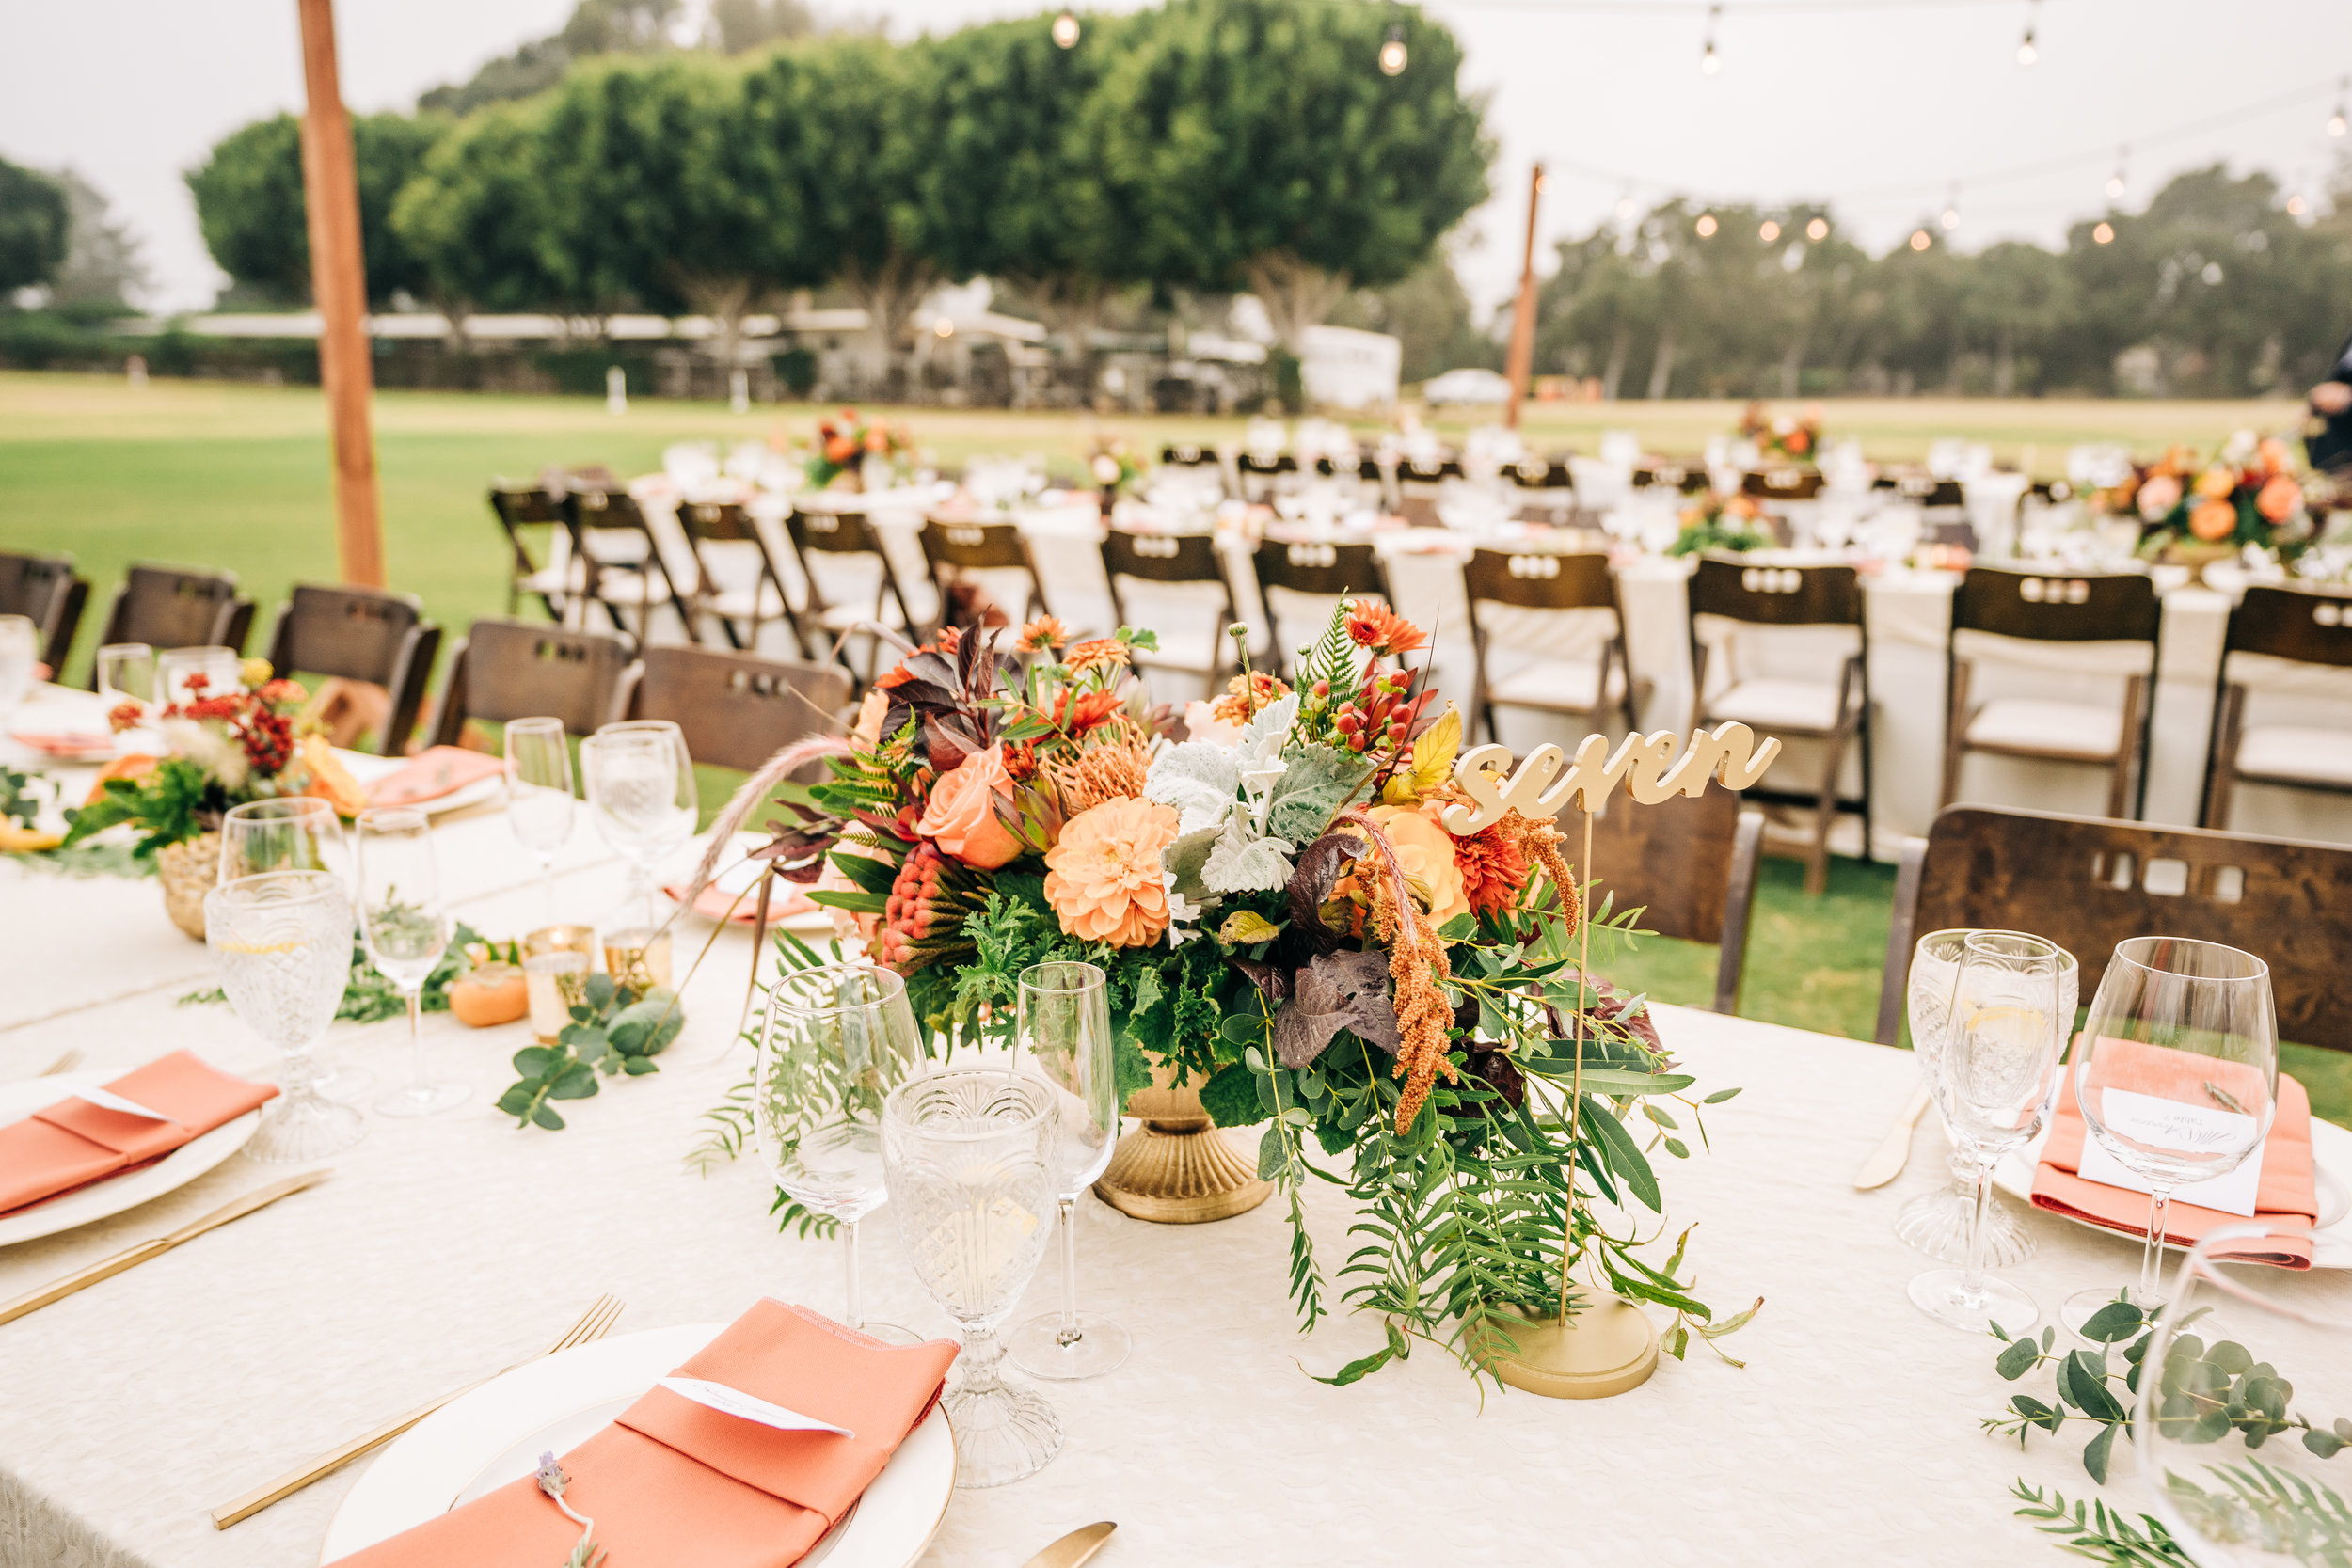 www.santabarbarawedding.com | Brandon Bibbins Photography | The Cottages at Polo Run | Bright Event Rentals | Reception Table Arrangements